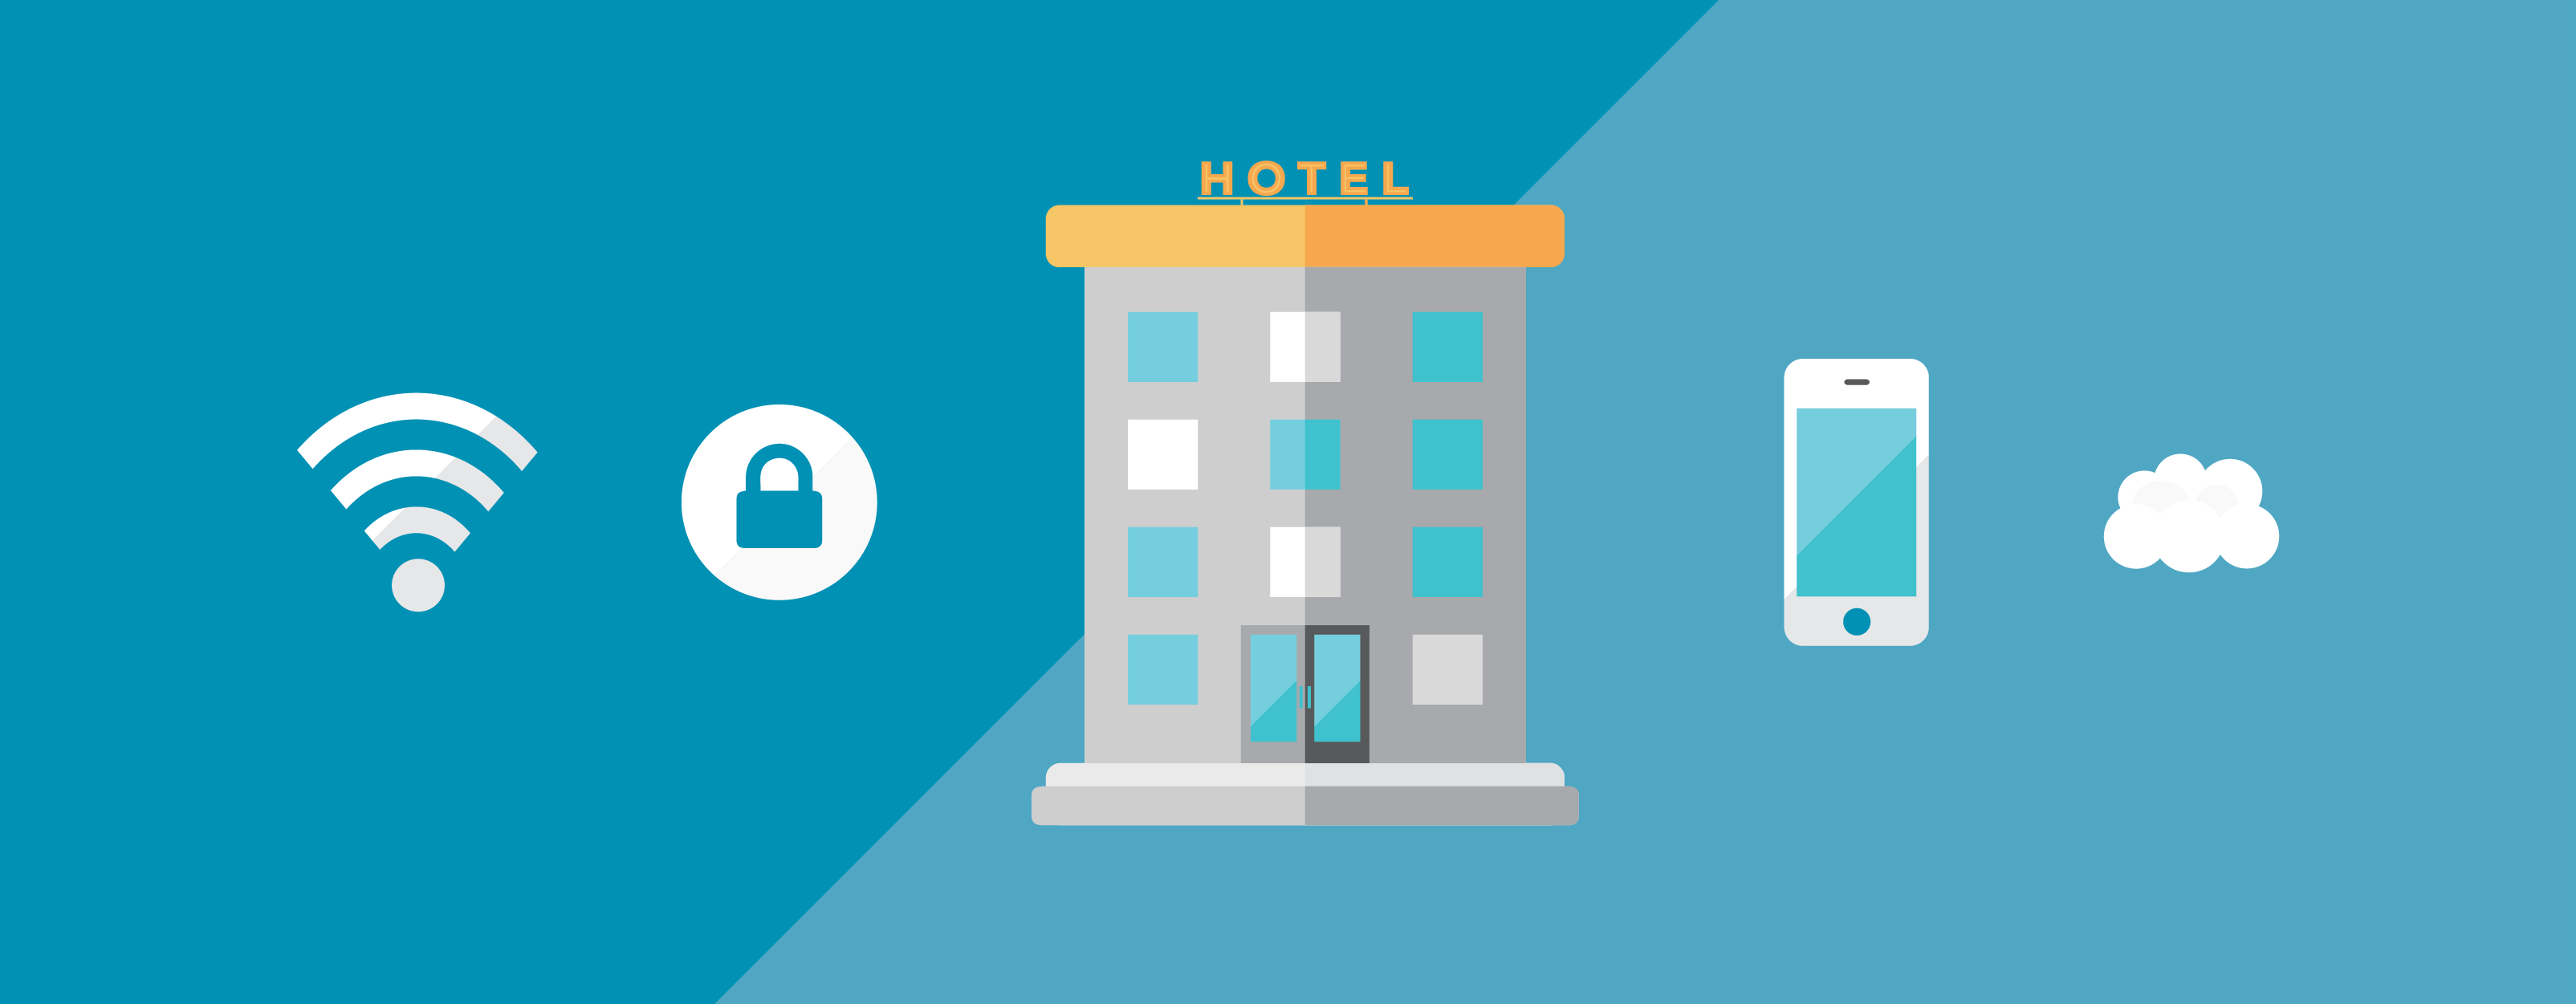 Illustrated graphic, business technology for hotels